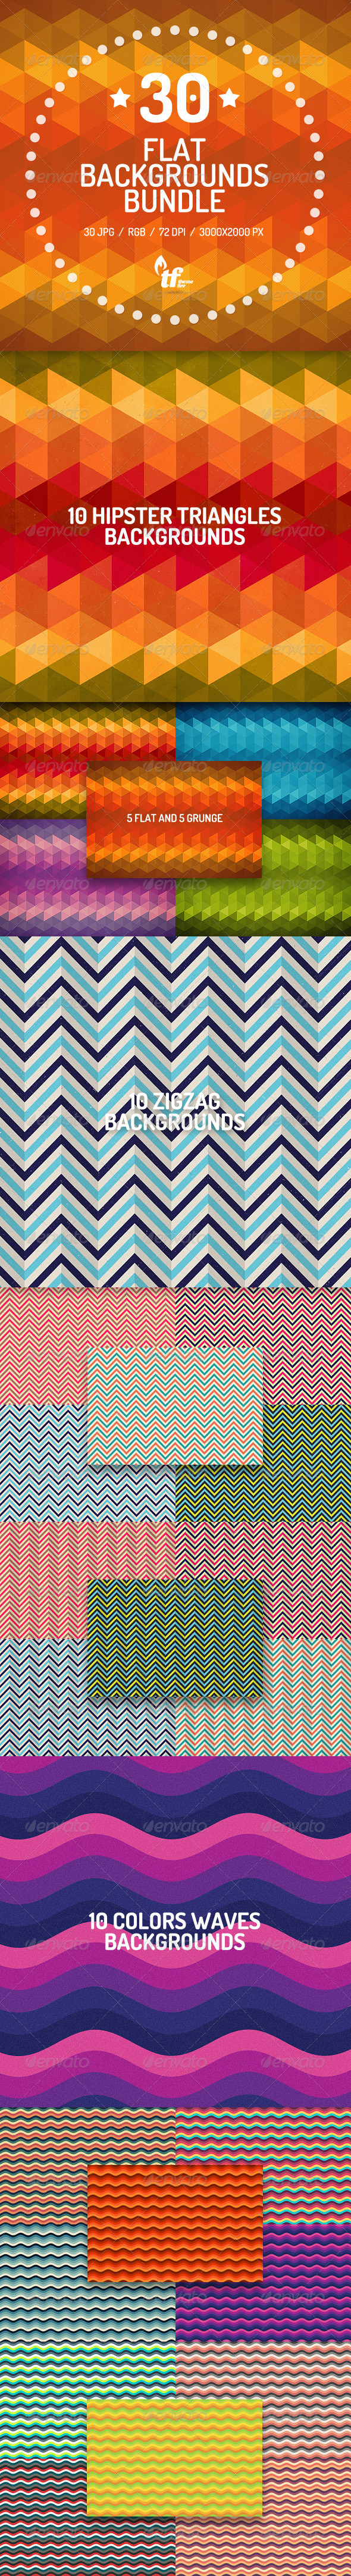 GraphicRiver 30 Flat Backgrounds Bundle 8604470